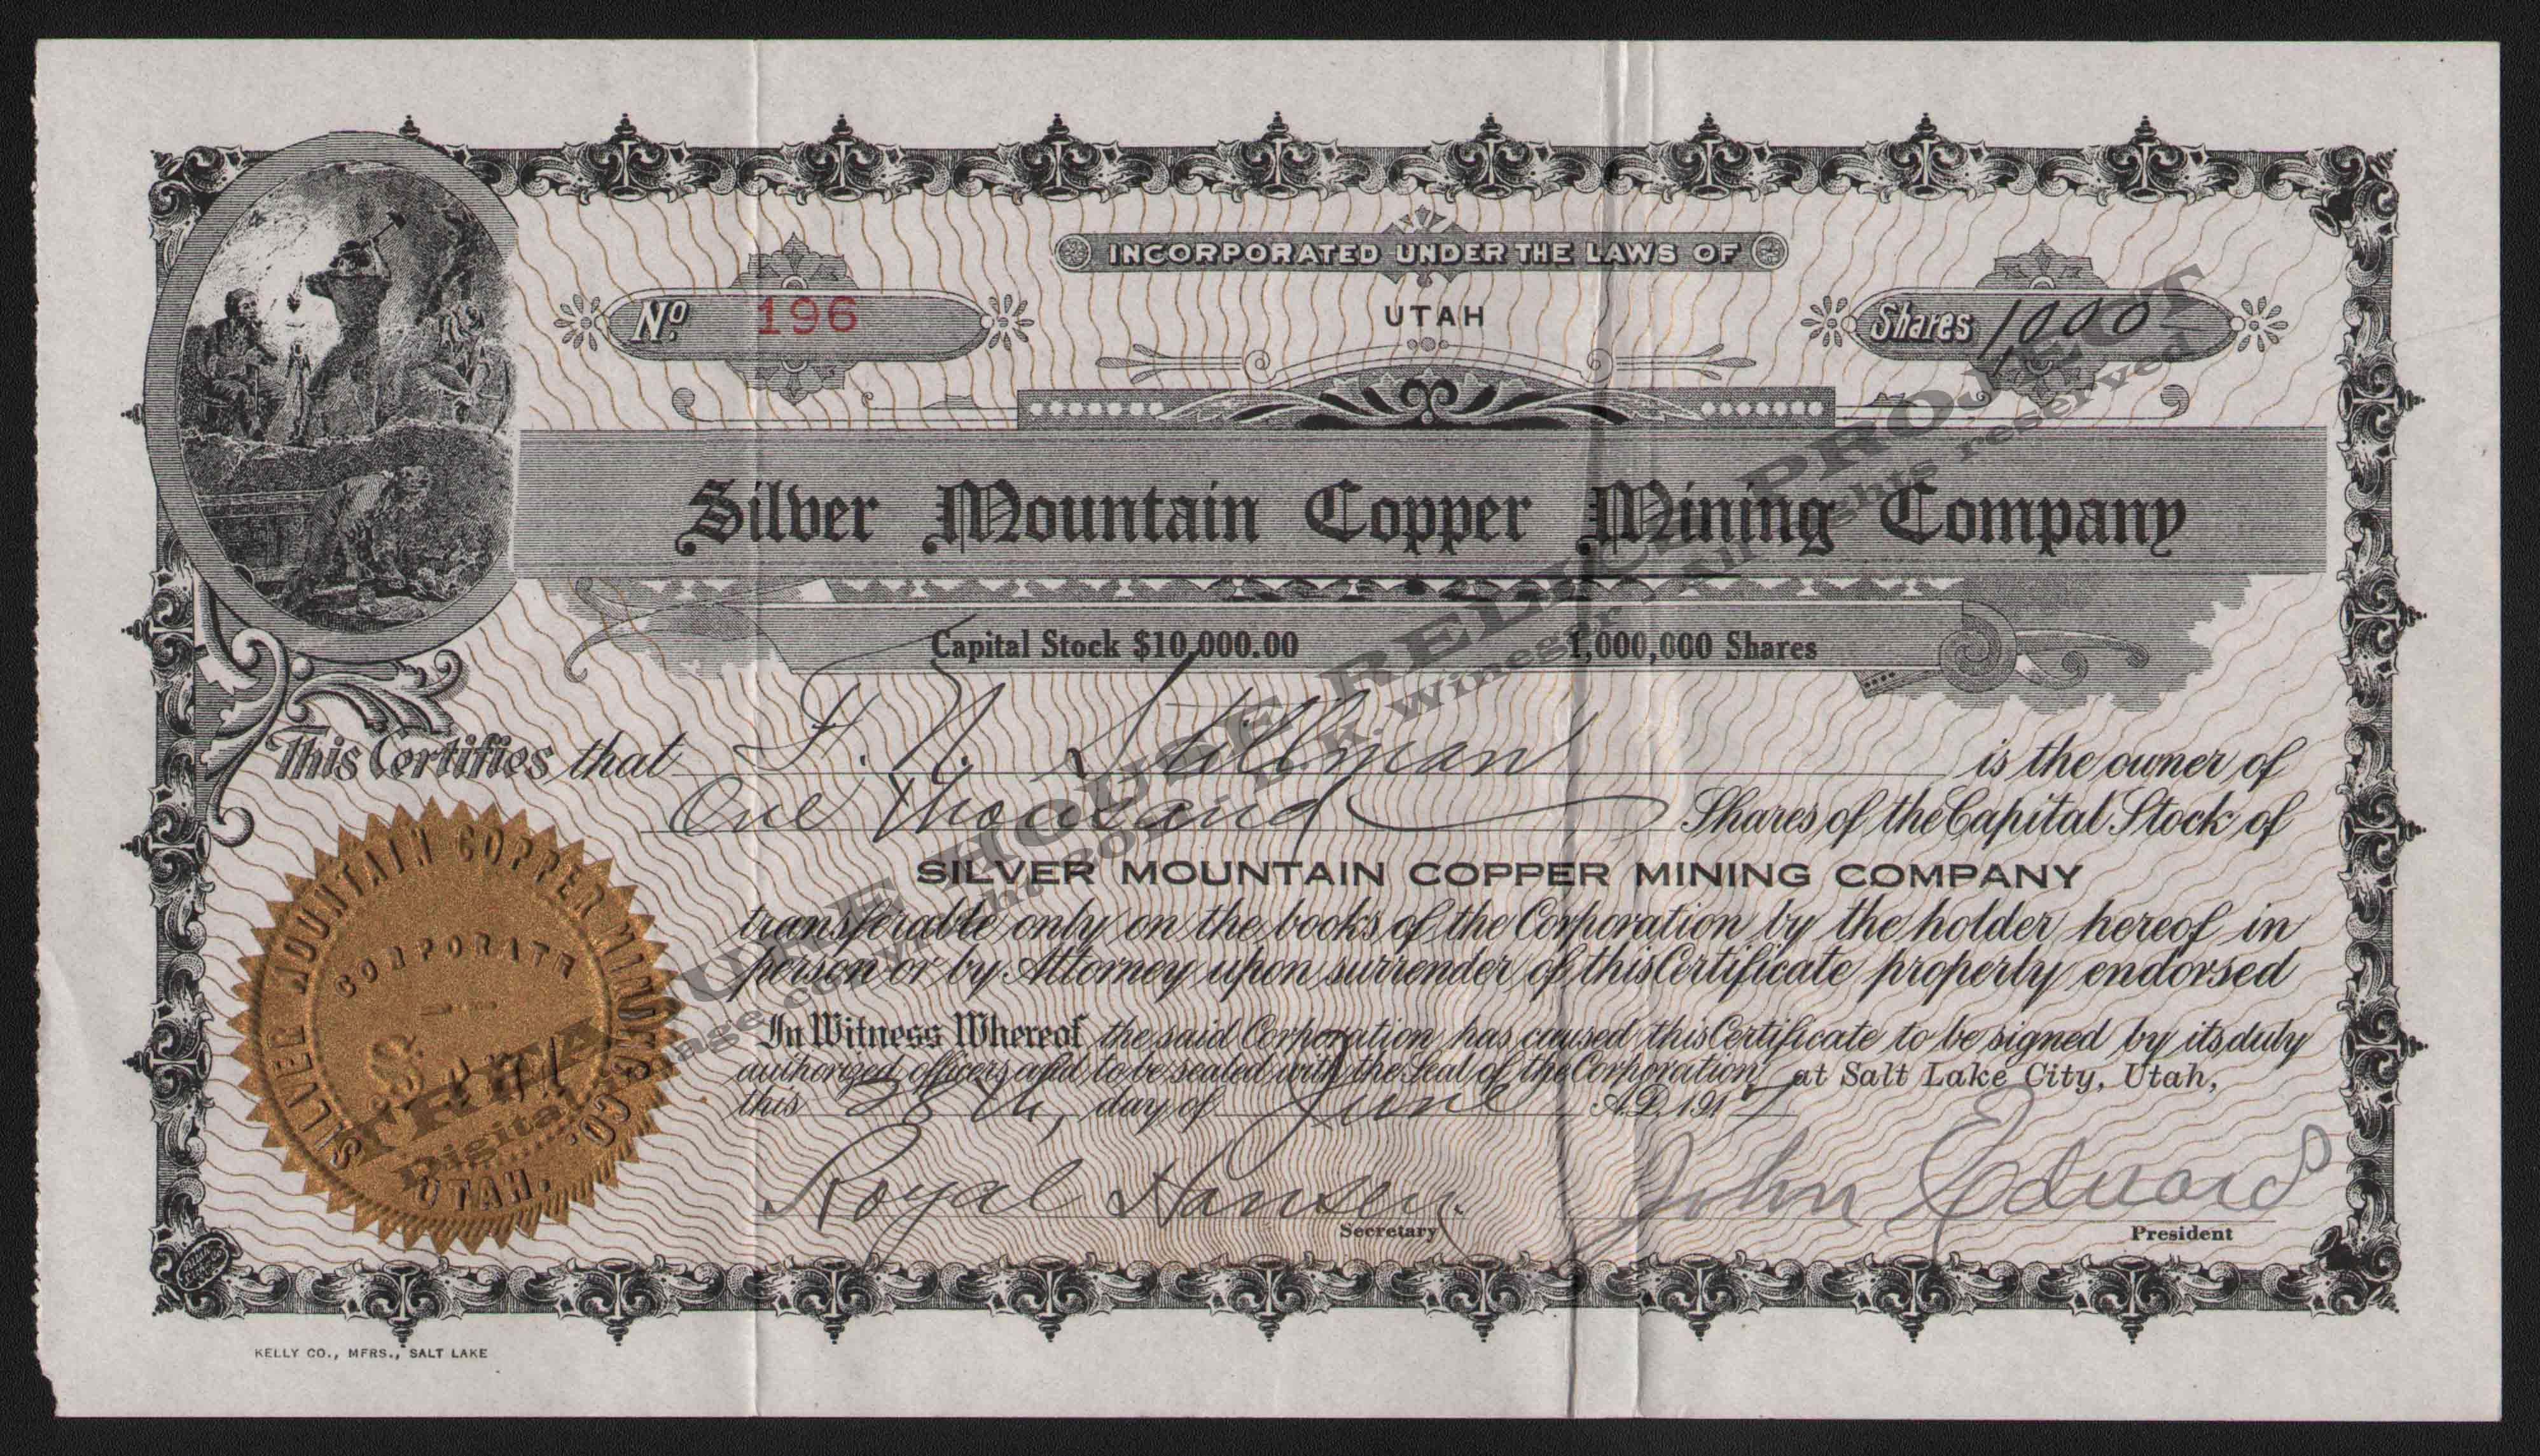 SILVER_MOUNTAIN_COPPER_COMPANY_196_1917_400_emboss.jpg